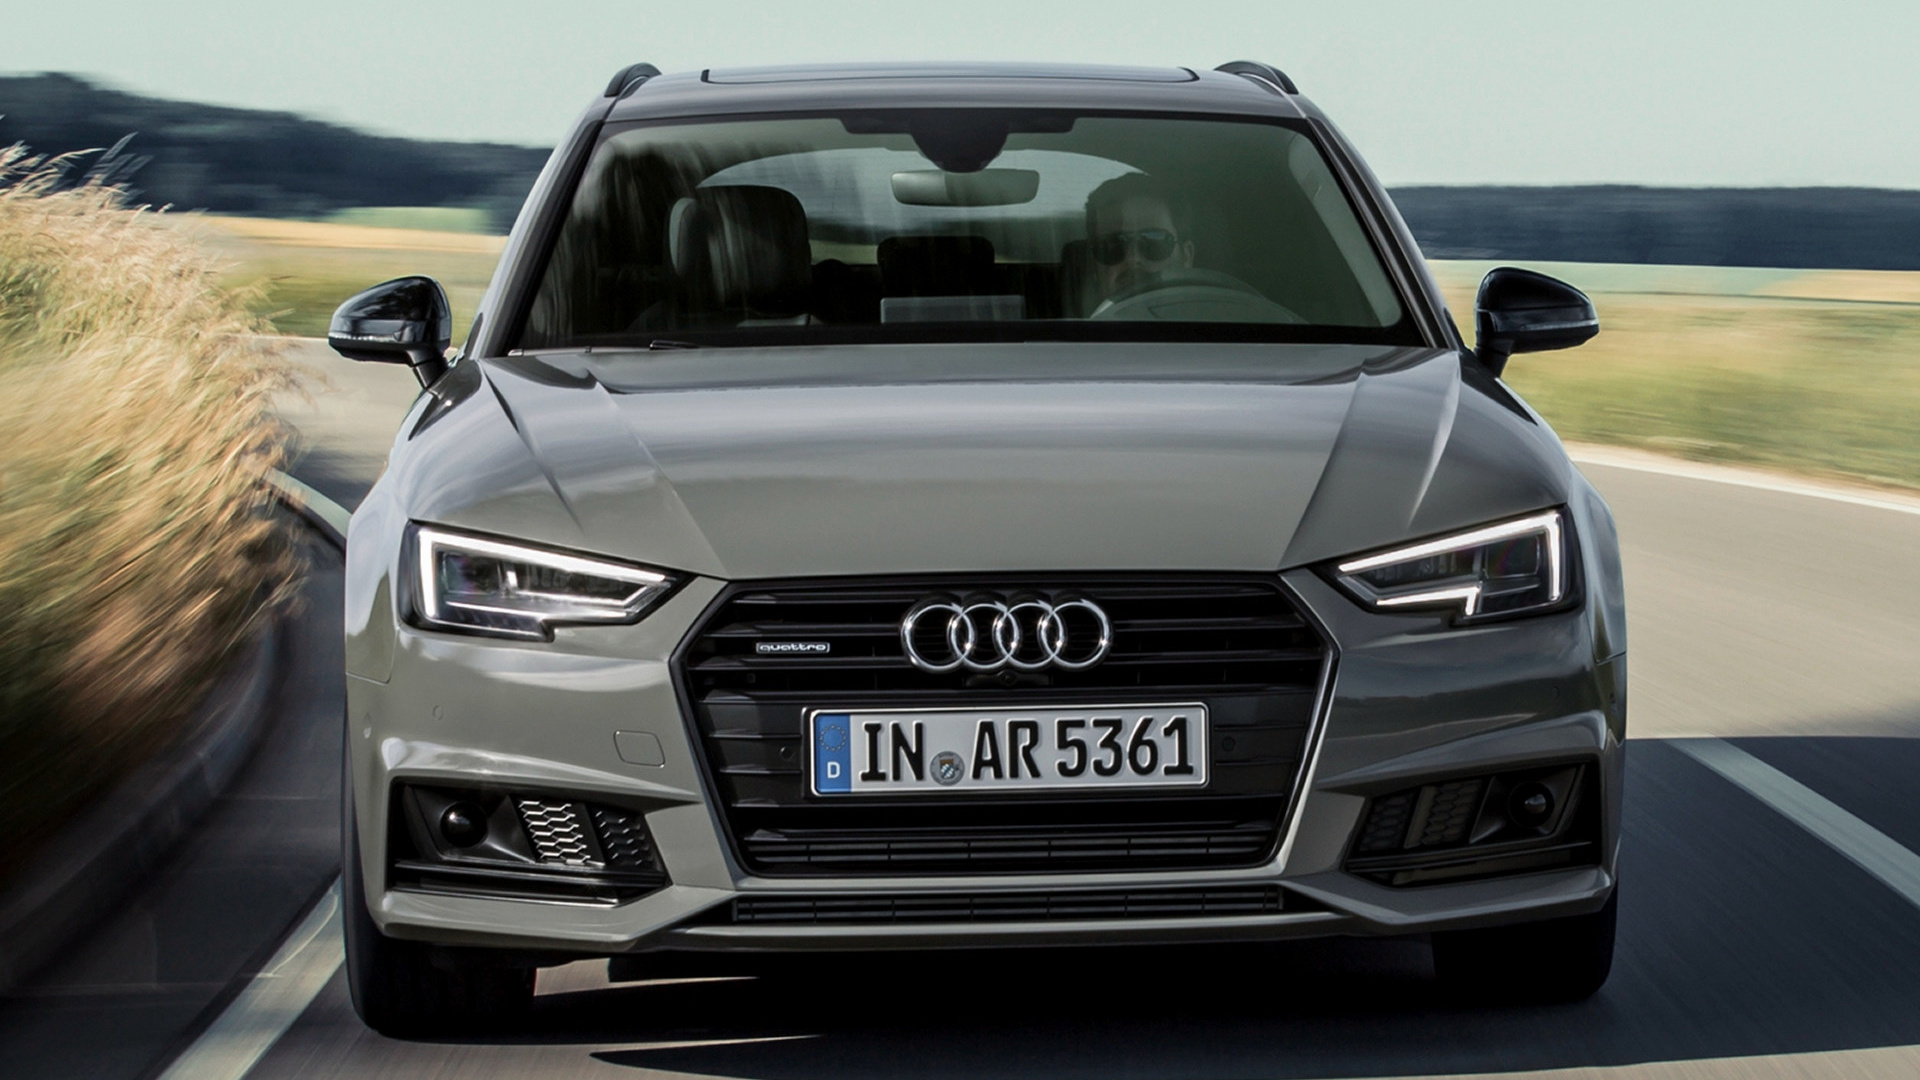 2017 Audi A4 Avant Black Edition Wallpapers And Hd Images